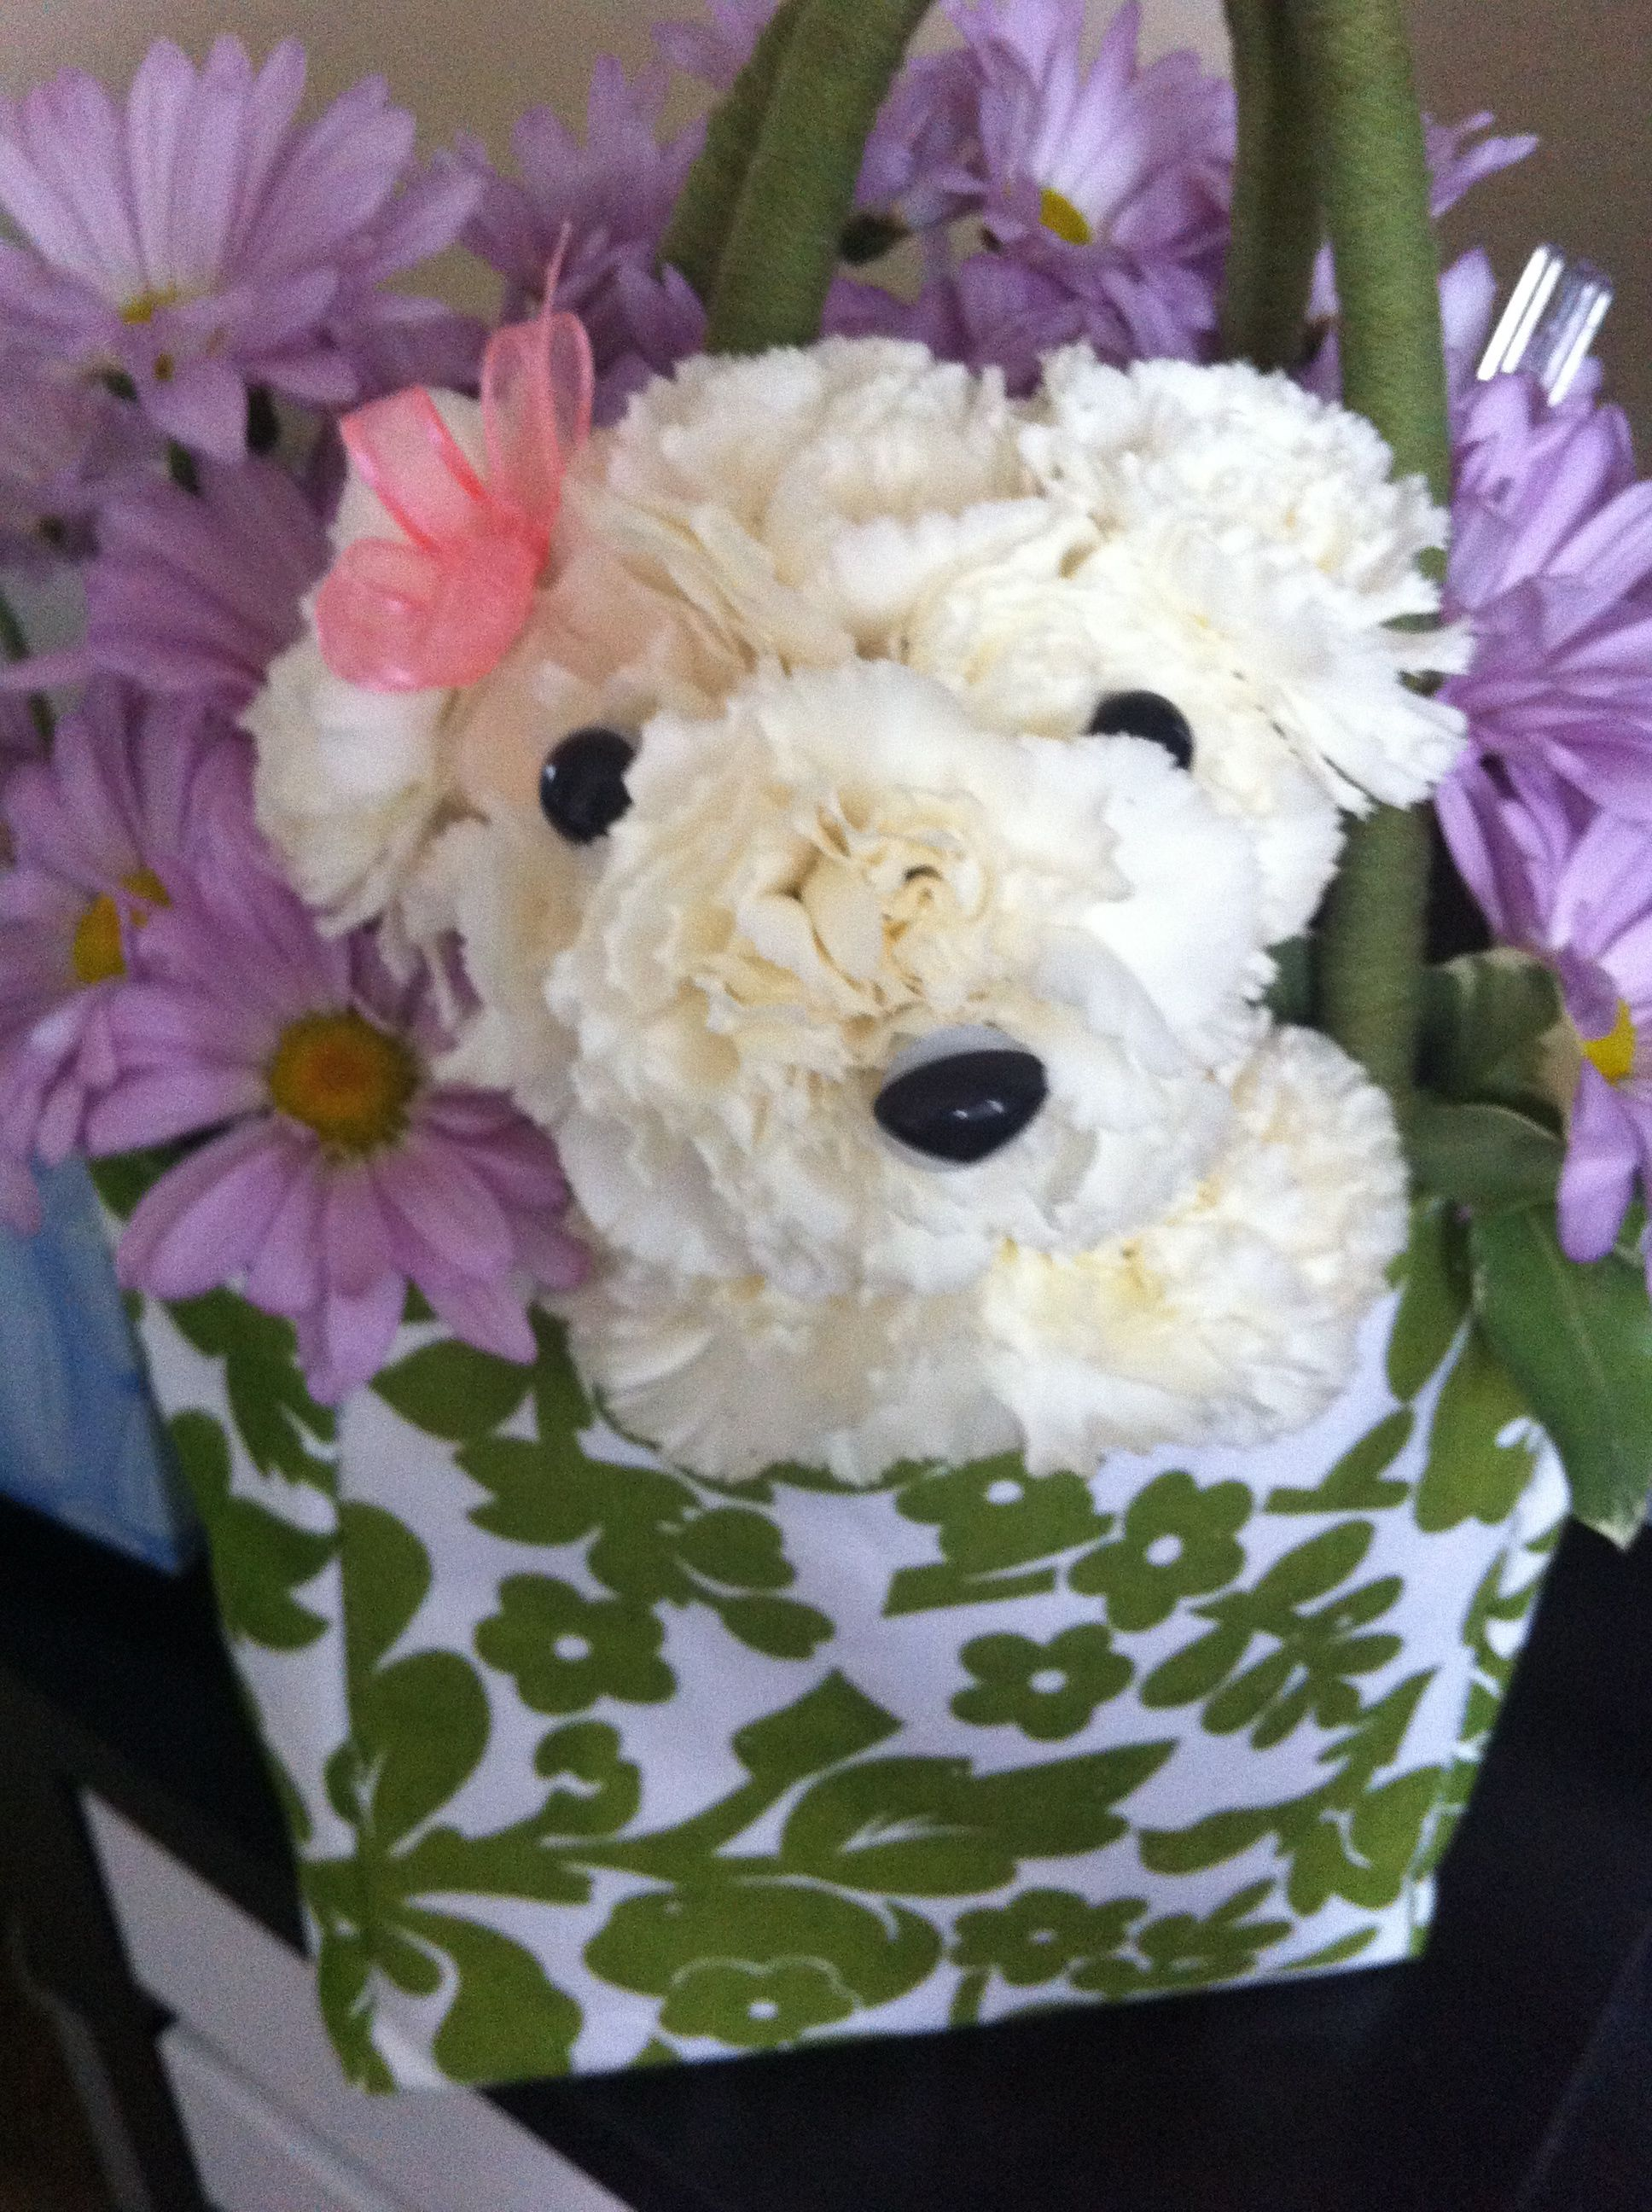 Teddy bear flower arrangement creative ideas pinterest flower teddy bear flower arrangement izmirmasajfo Gallery